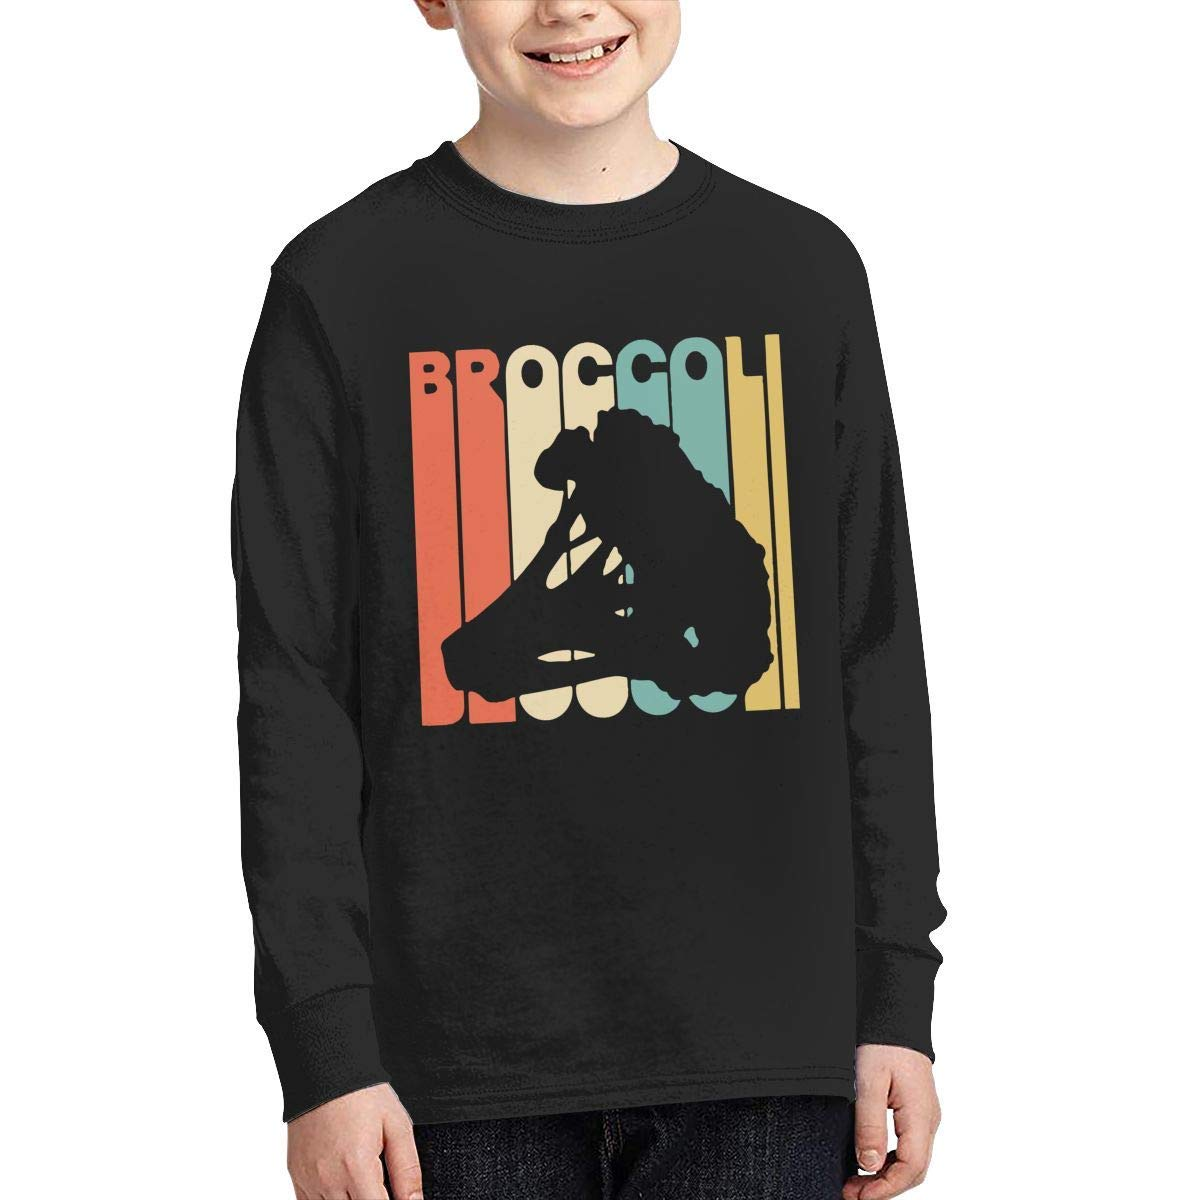 Boys Casual Long Sleeve Crew Neck Cotton Vintage Style Broccoli Silhouette Tee for Youth